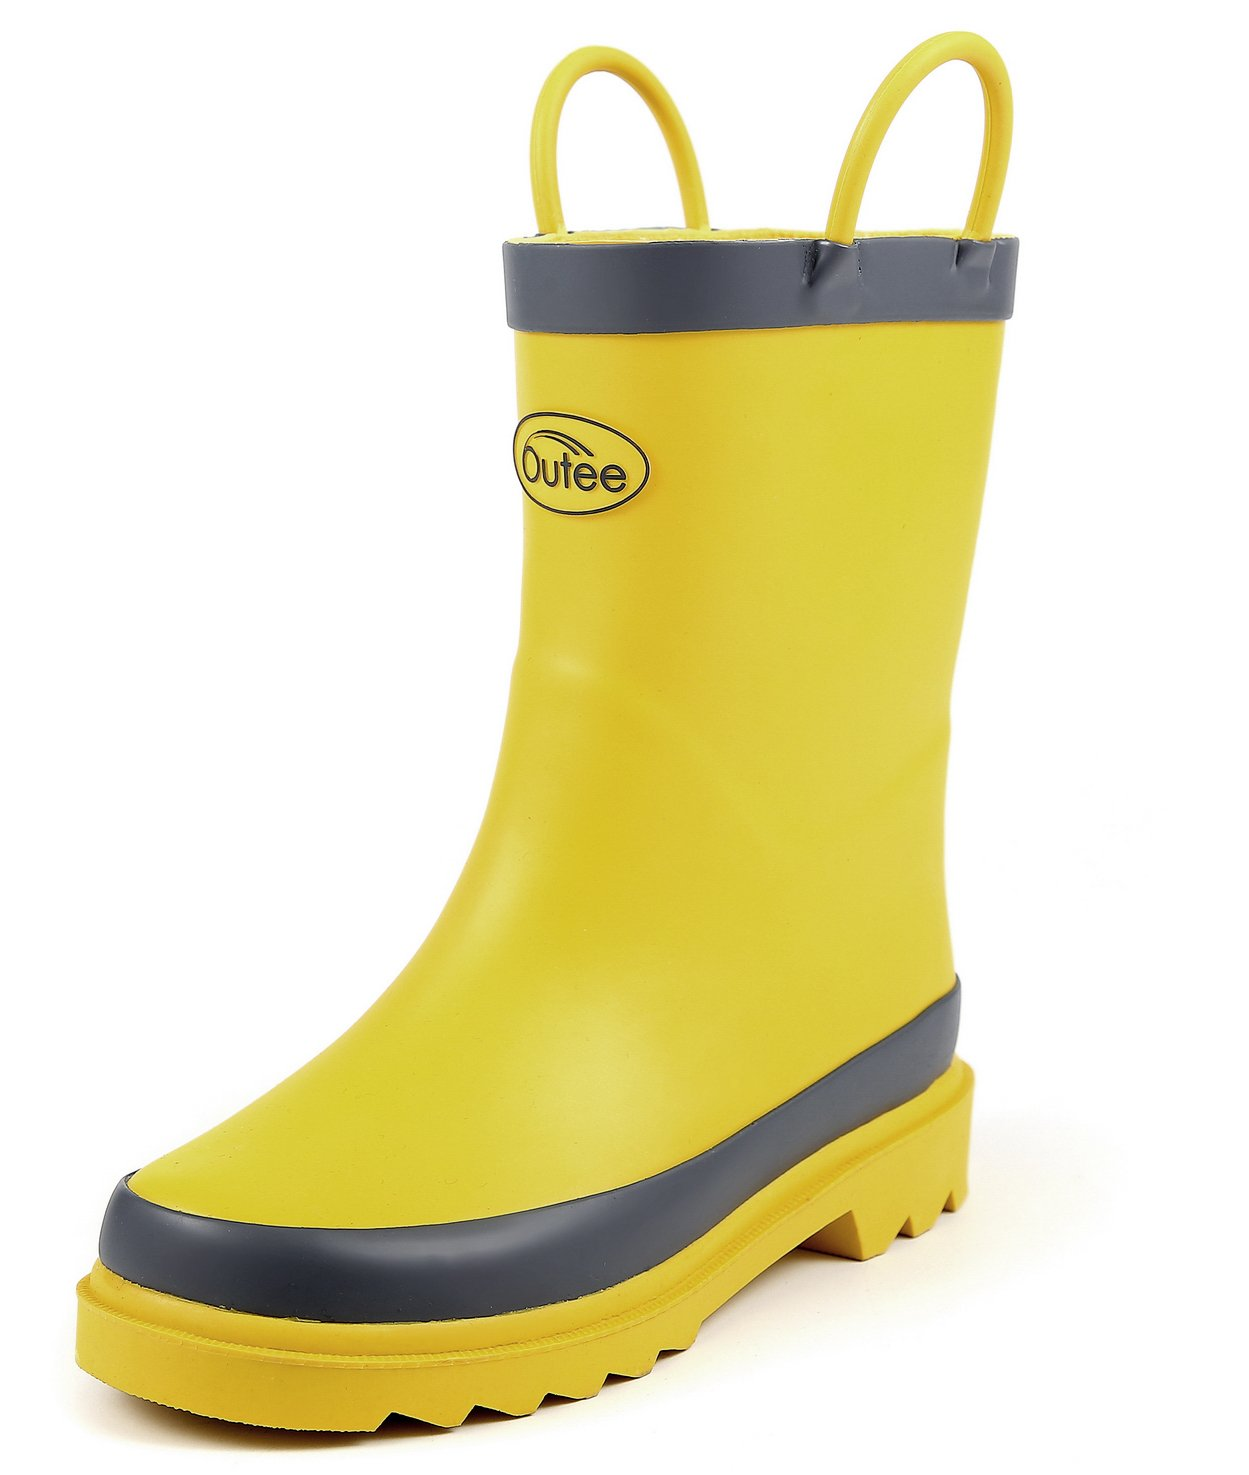 Outee Boys Girls Kids Rubber Rain Boots Waterproof Shoes Yellow in Solid Color with Easy On Handles Cute Fun Removable Insoles Anti-Slippery Durable Sole with Grip (Size 3)